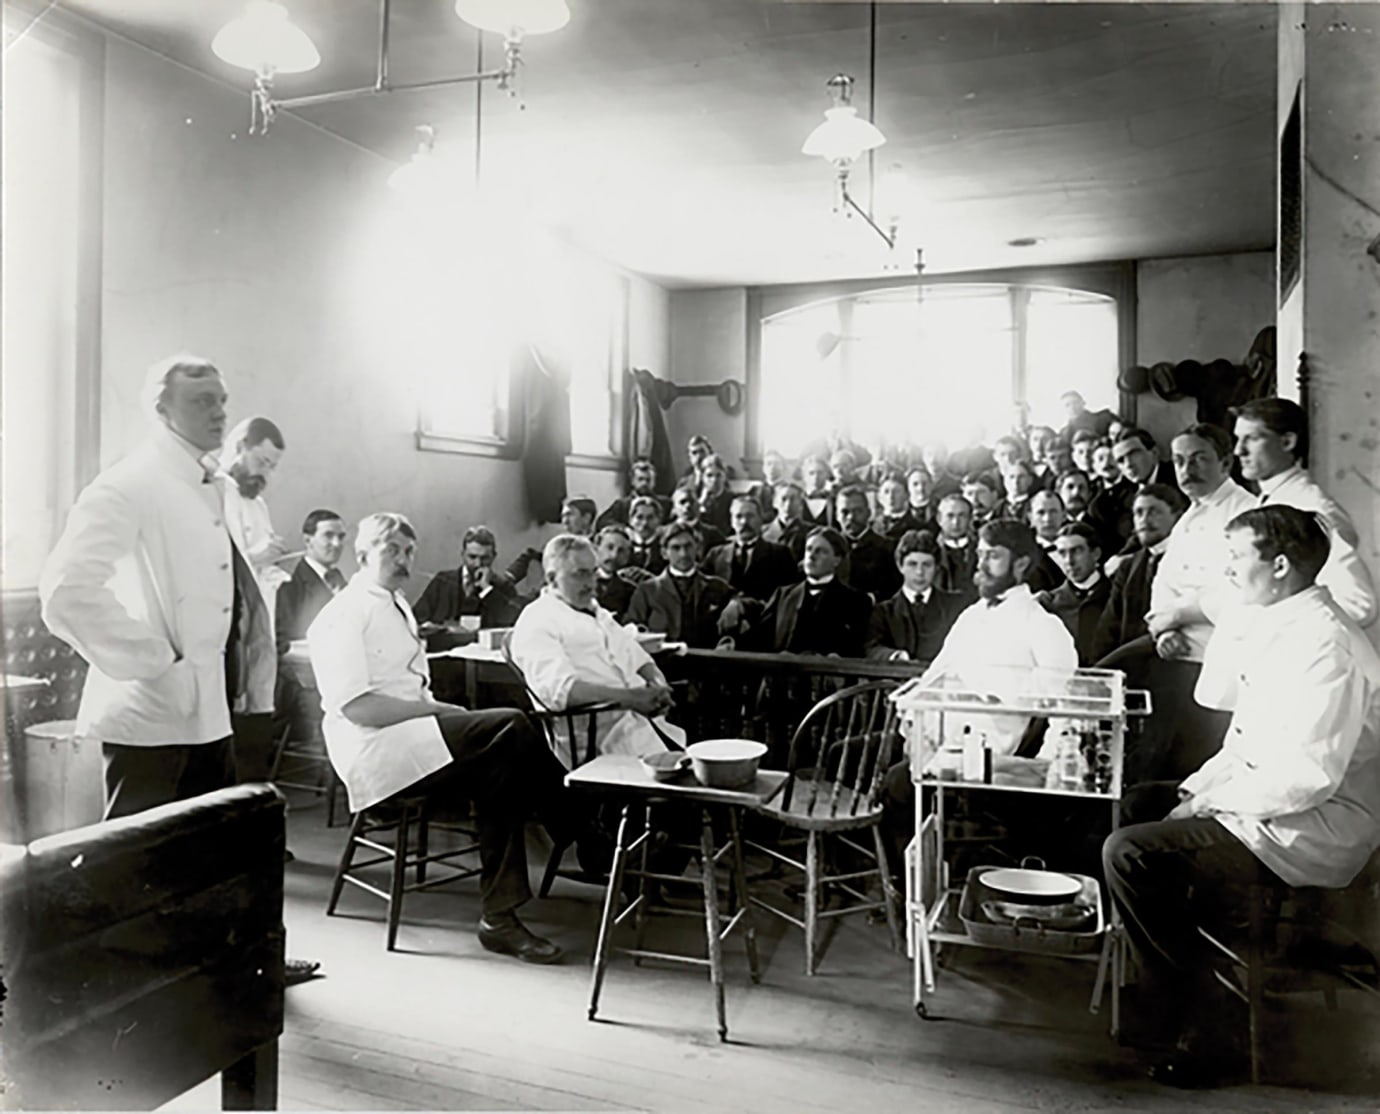 In this photo, taken around 1900, the legendary surgeon and medical educator William Carmalt (standing at left) lectures at the medical school